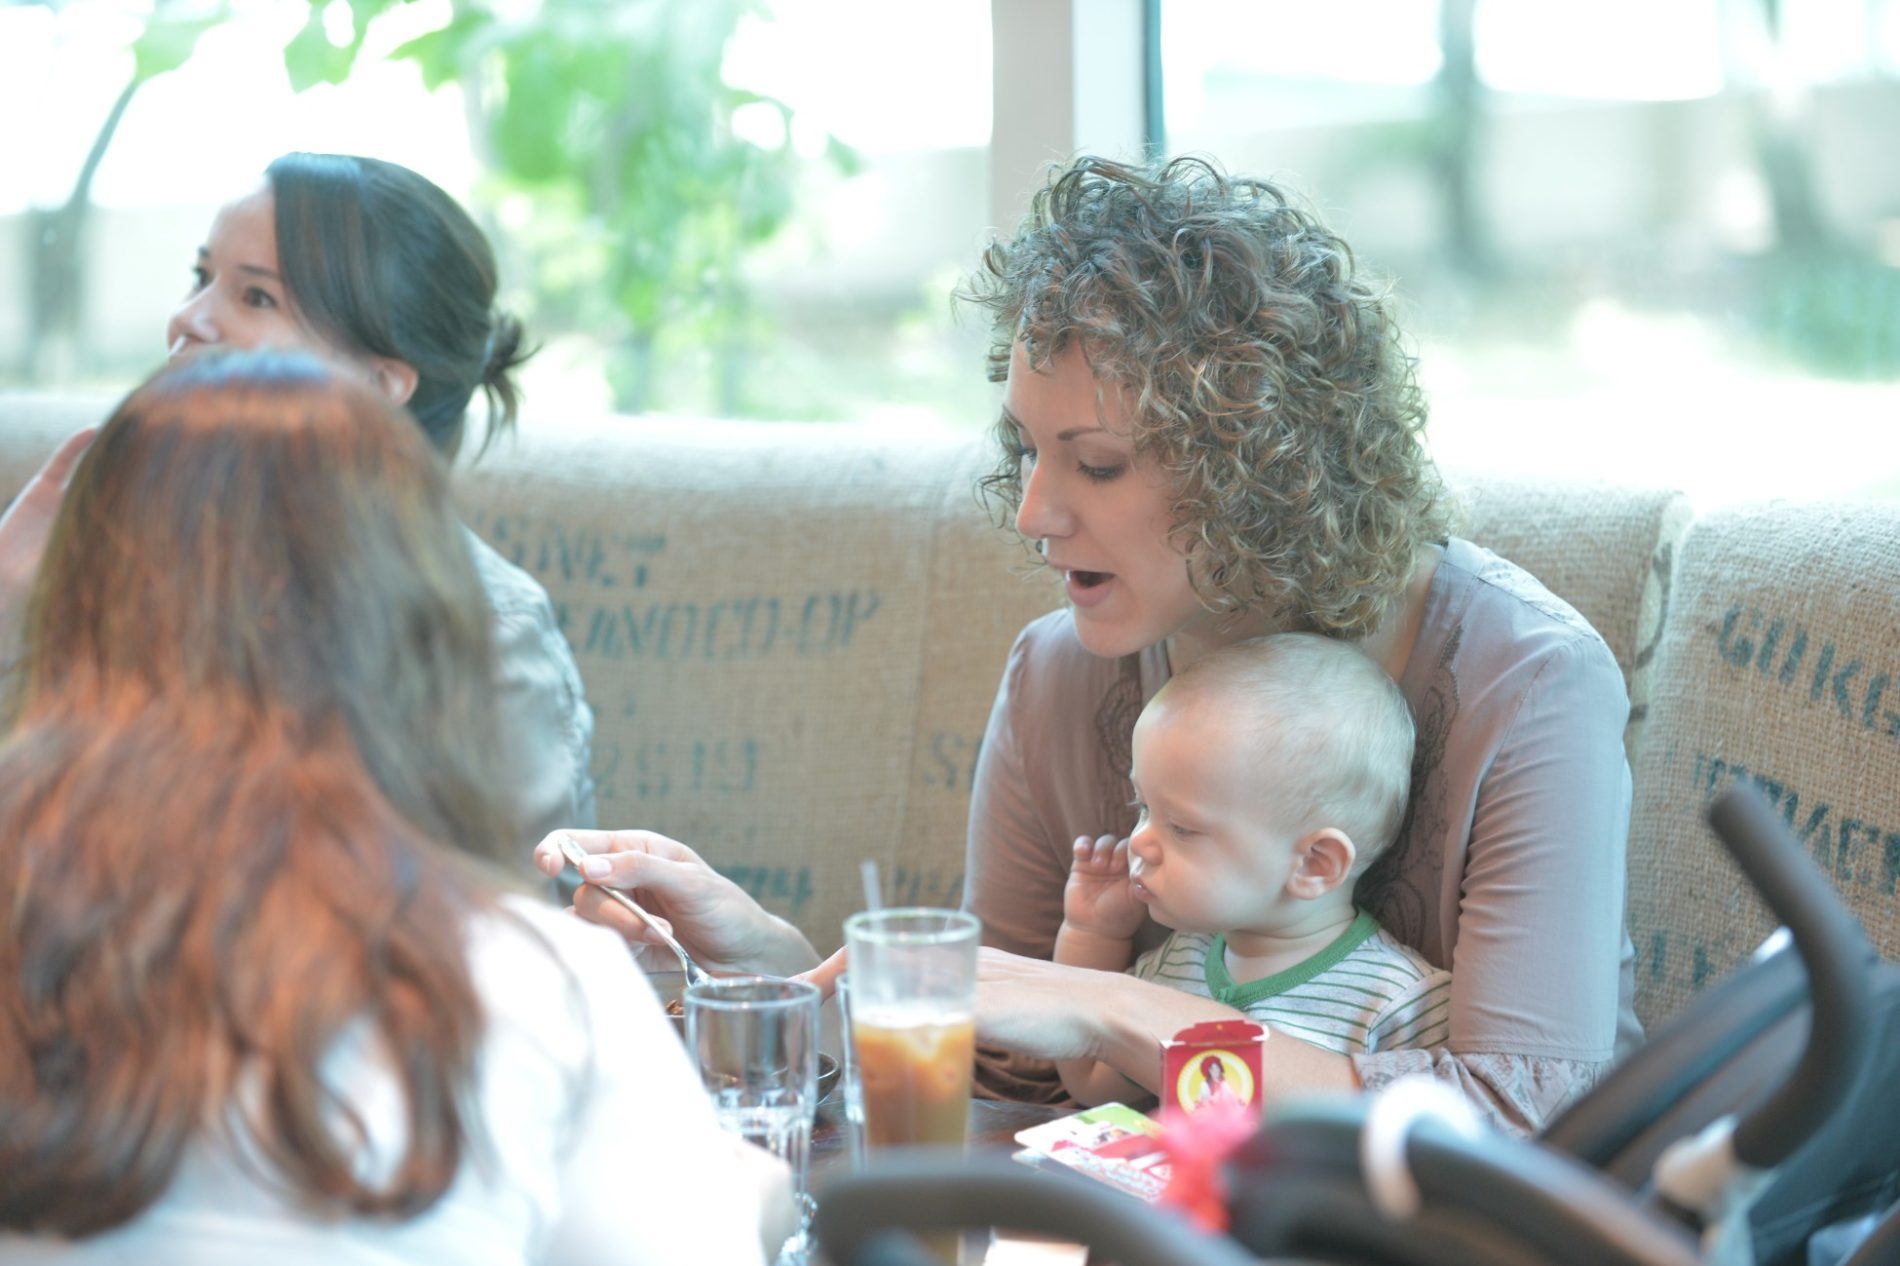 CitiSpi's Bumps and Beyond Breakfast